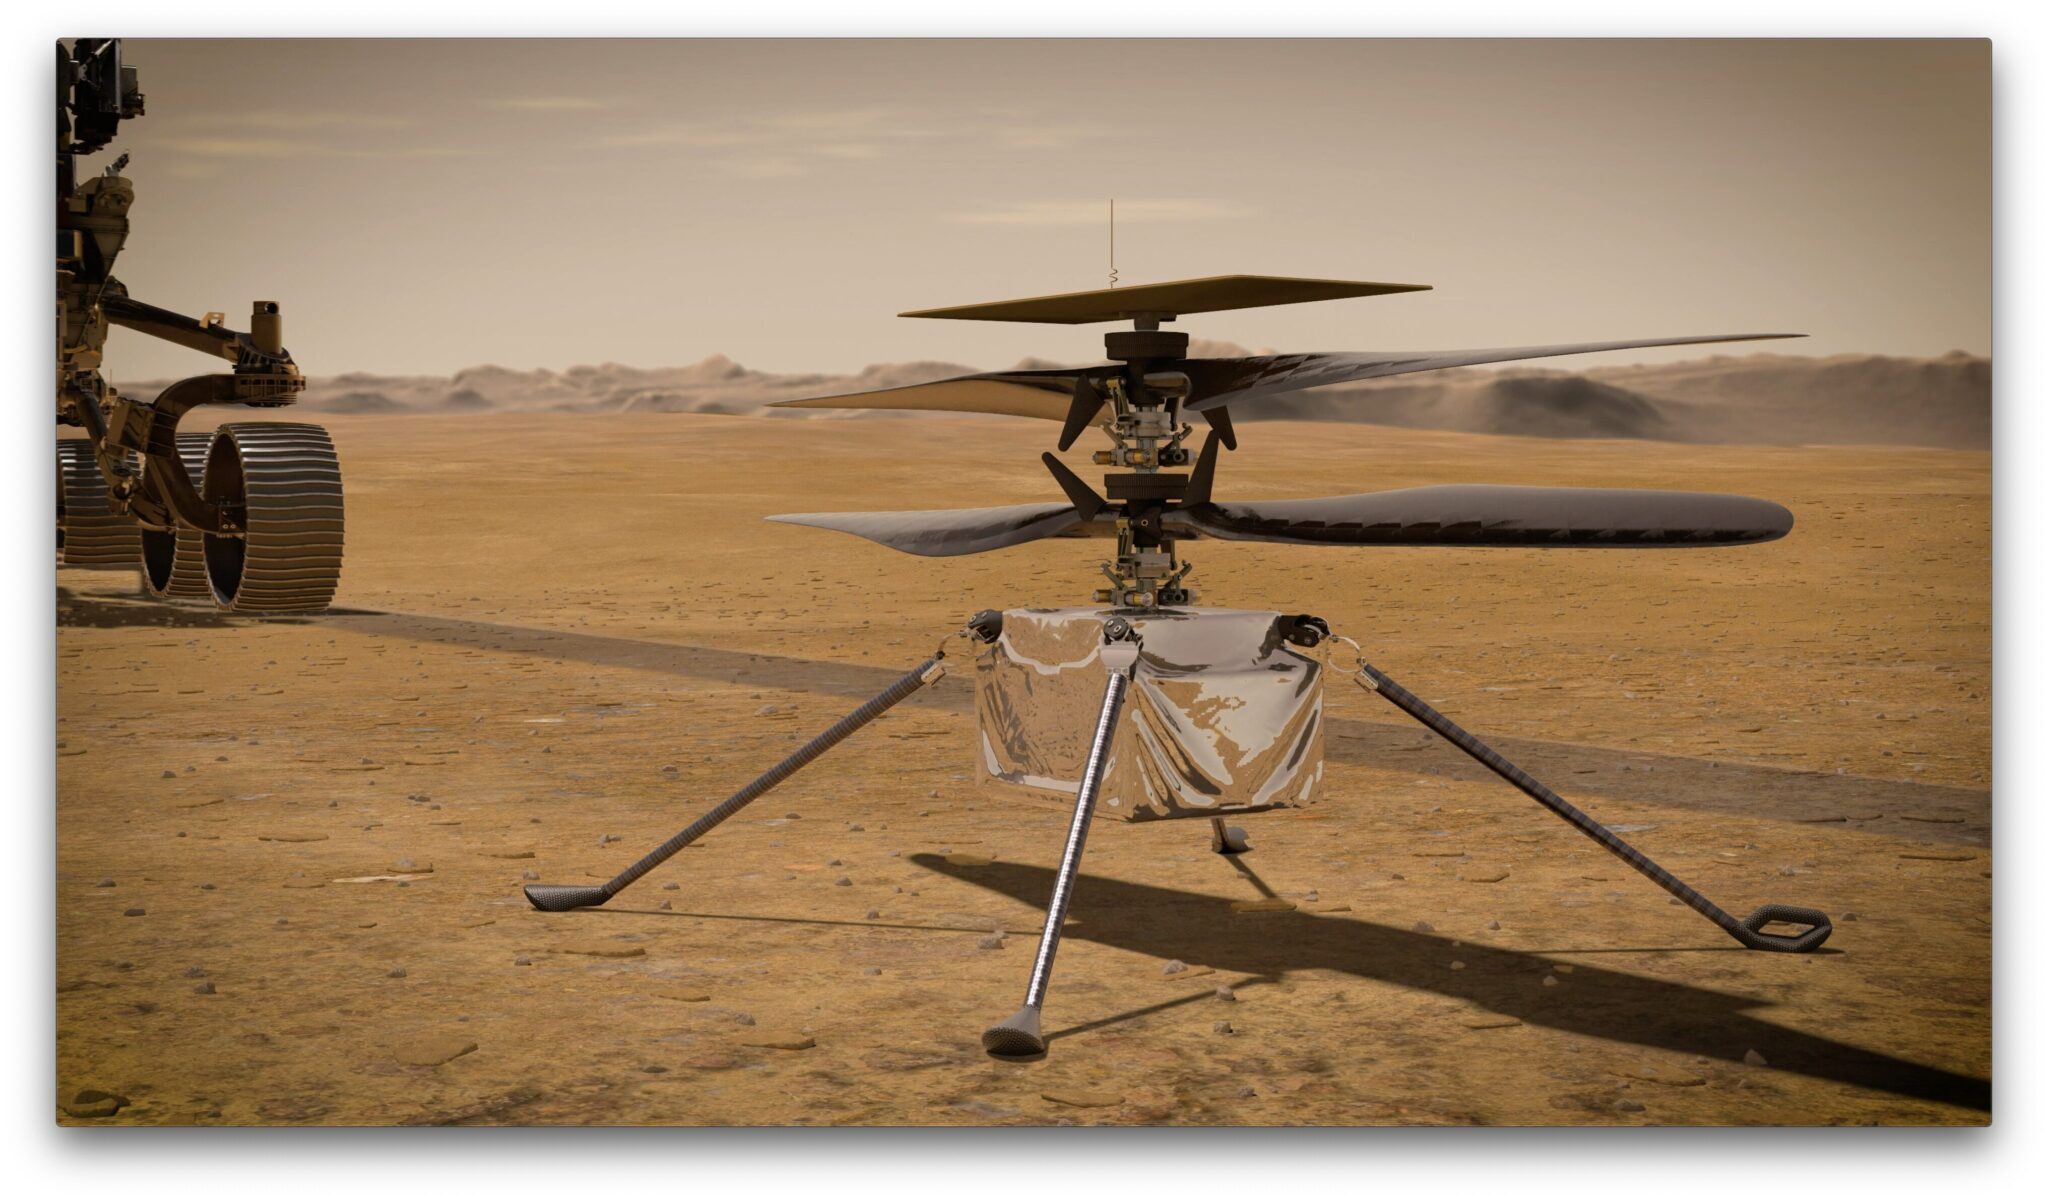 Mars Missions 2020: Ingenuity Helicopter της NASA